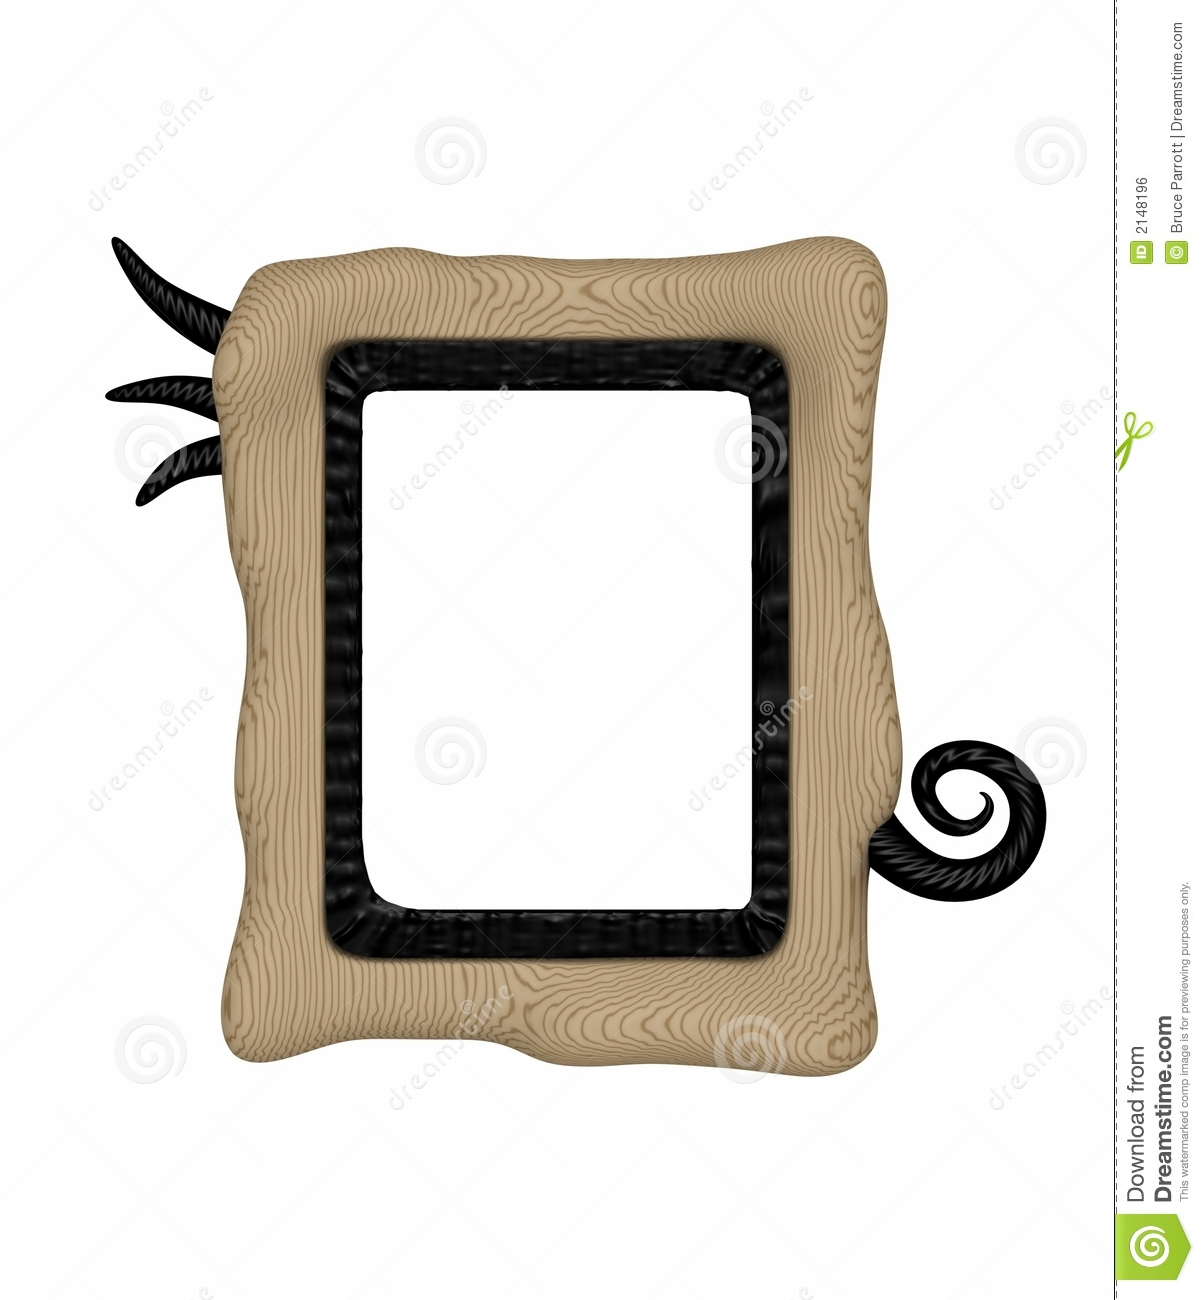 Unique Picture Frame Royalty Free Stock Image Image 2148196